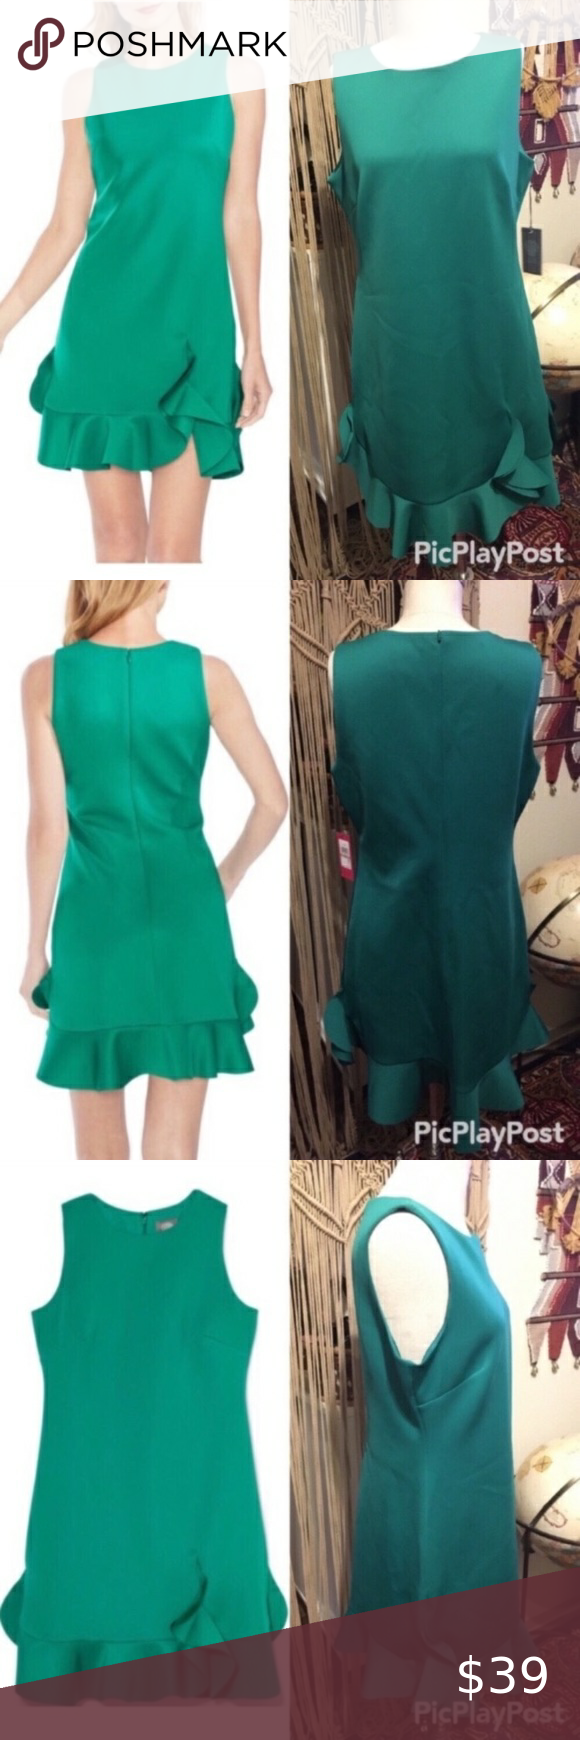 Vince Camuto Scuba Ruffle Hem Green Dress 12 Form Fitting Without Being Tight Silky Smooth Emerald Green Dress Looks In 2020 Green Dress Fashion Emerald Green Dresses [ 1740 x 580 Pixel ]